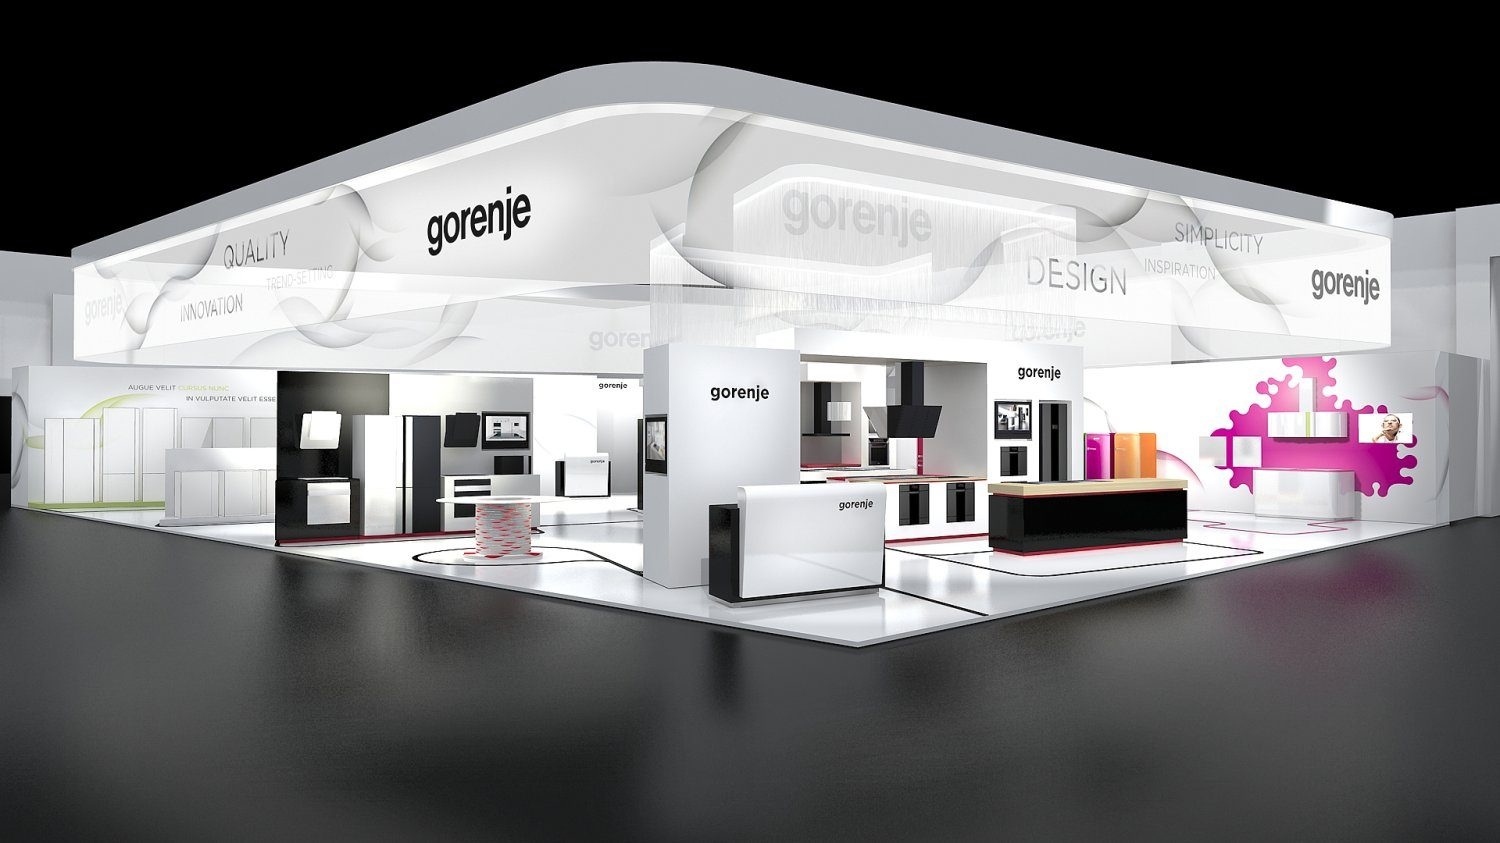 gorenje at berlin 39 s ifa 2009 fair gorenje. Black Bedroom Furniture Sets. Home Design Ideas